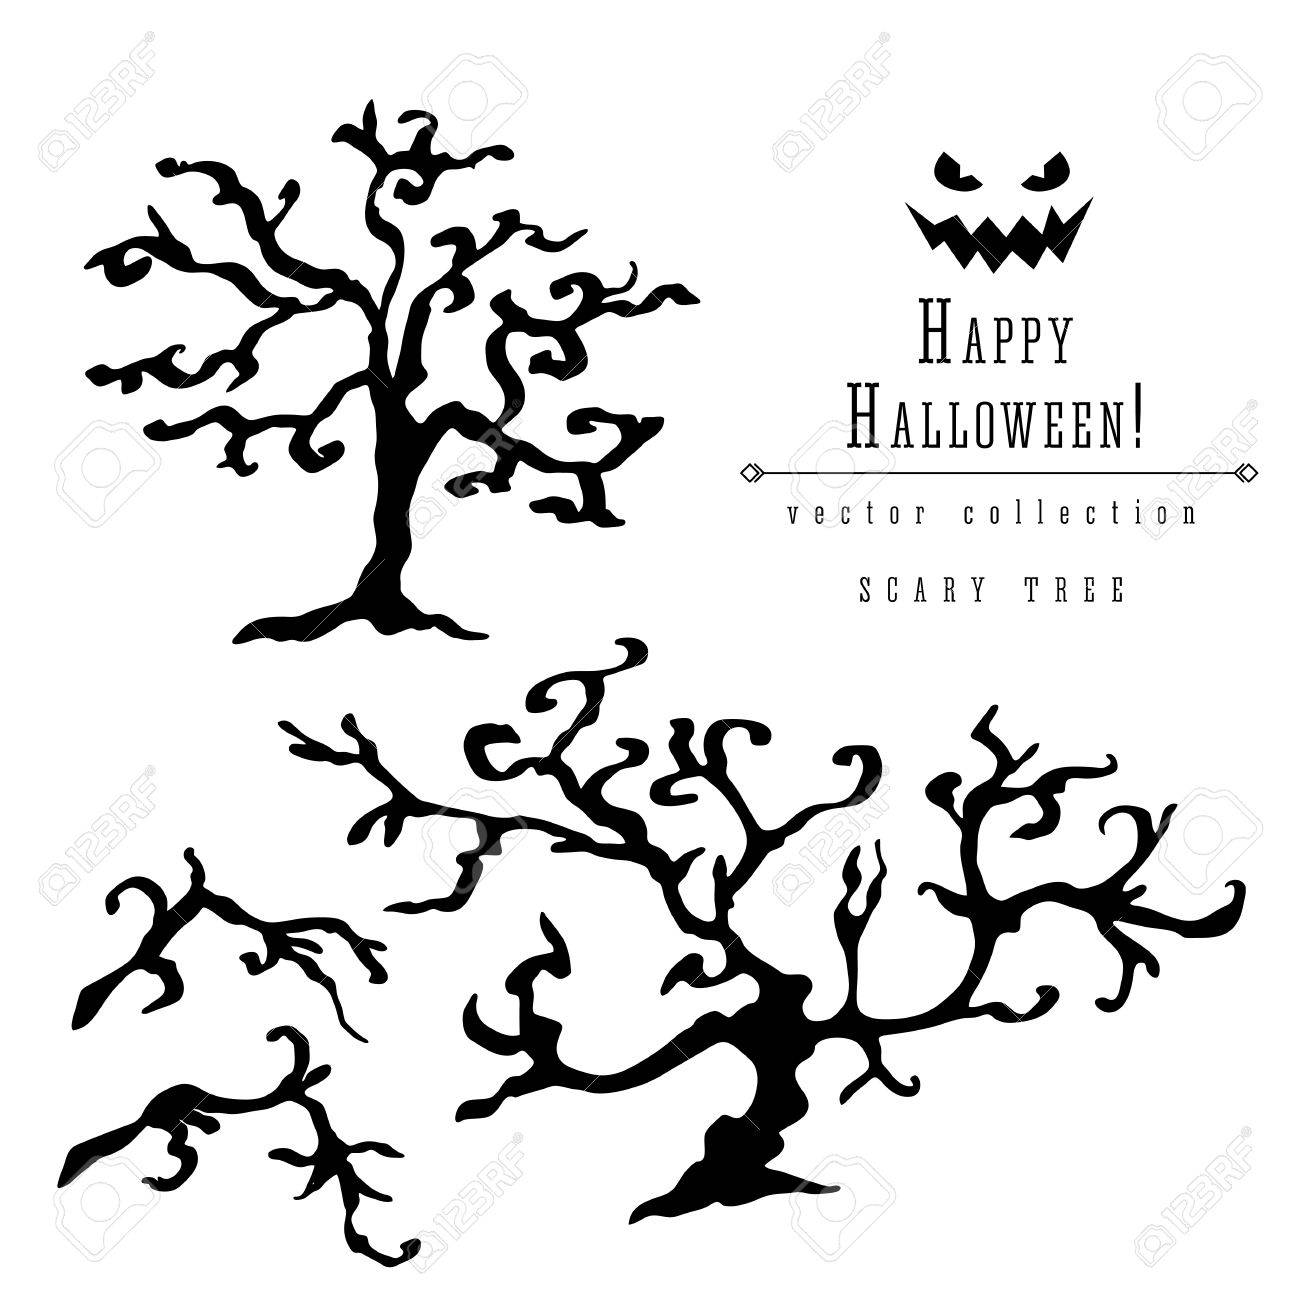 Scary Dead Trees Silhouette Vector Halloween Decoration Set With